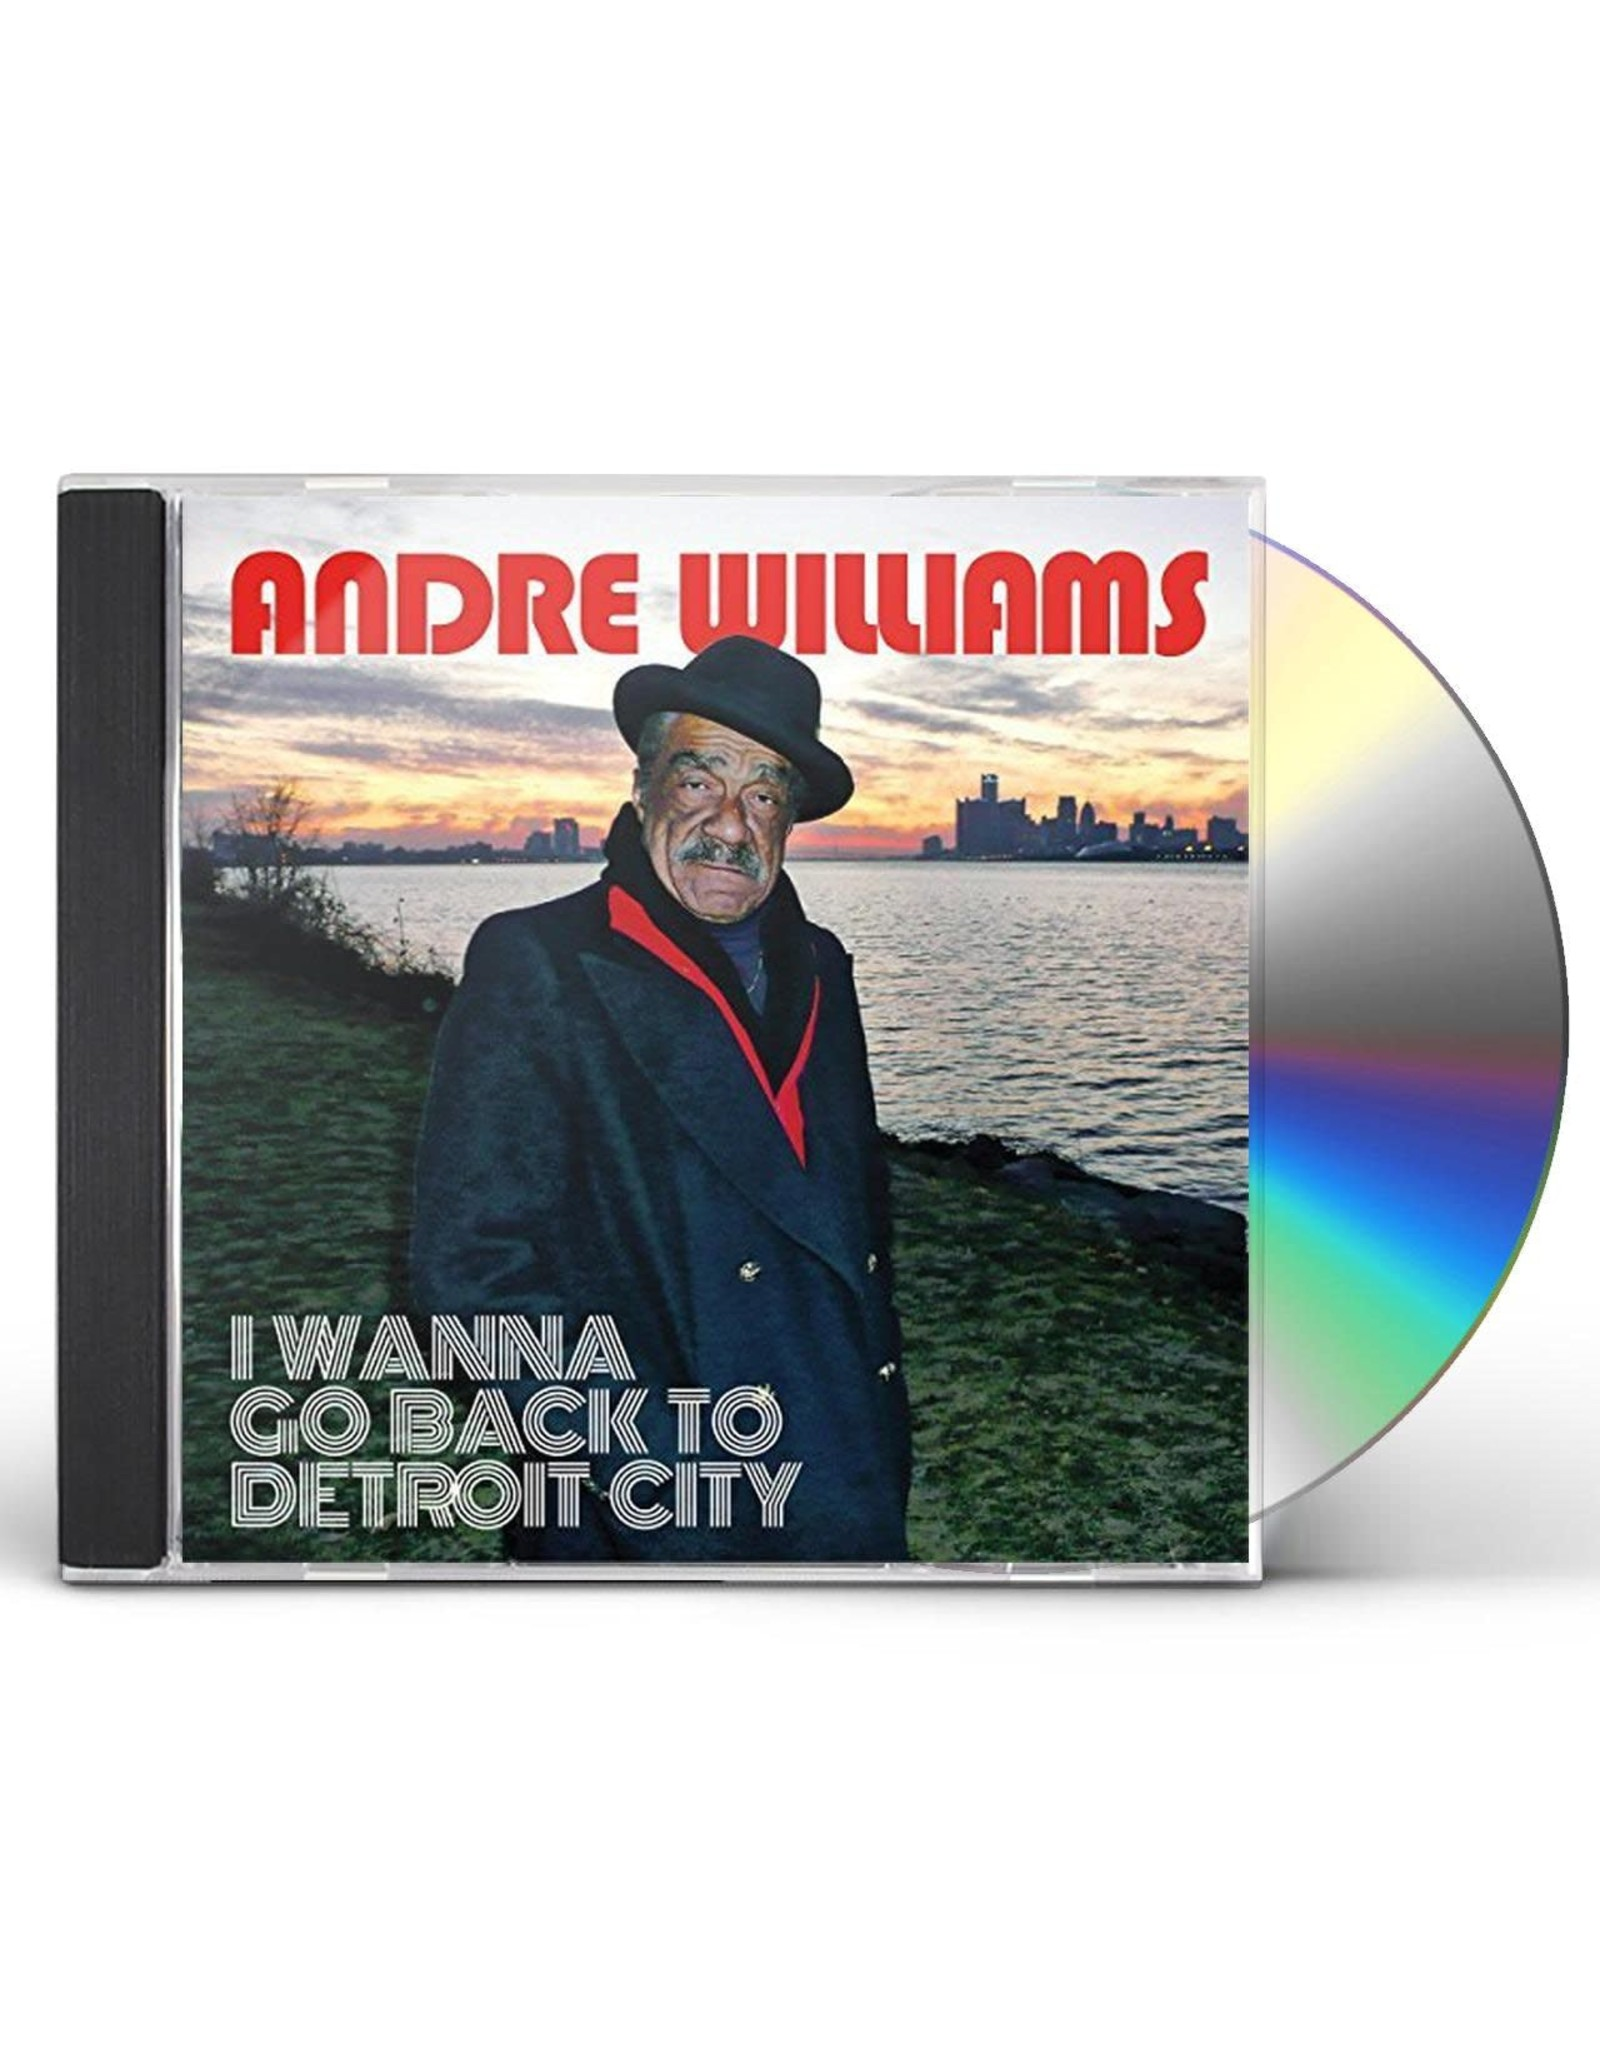 Williams, Andre - I Wanna Go Back to Detroit City CD